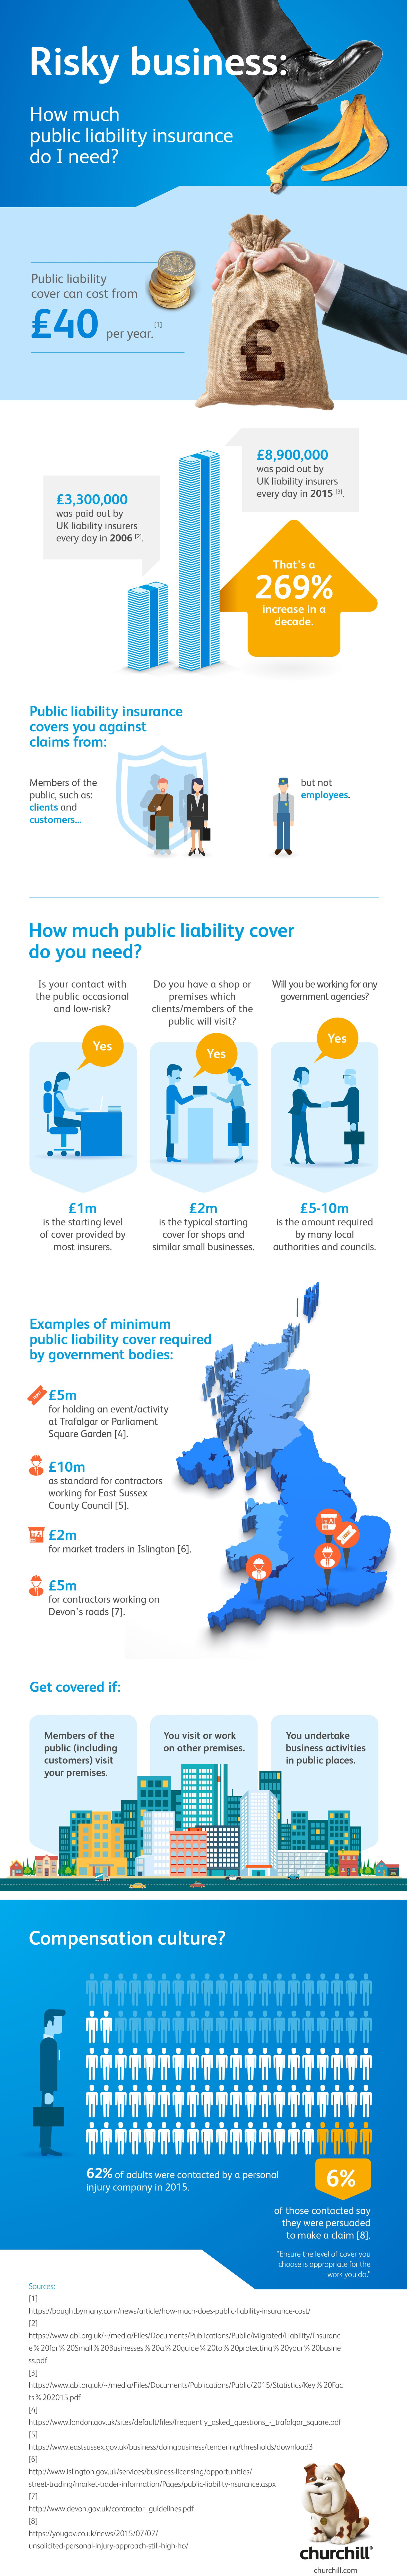 Risky business How much public liability insurance do